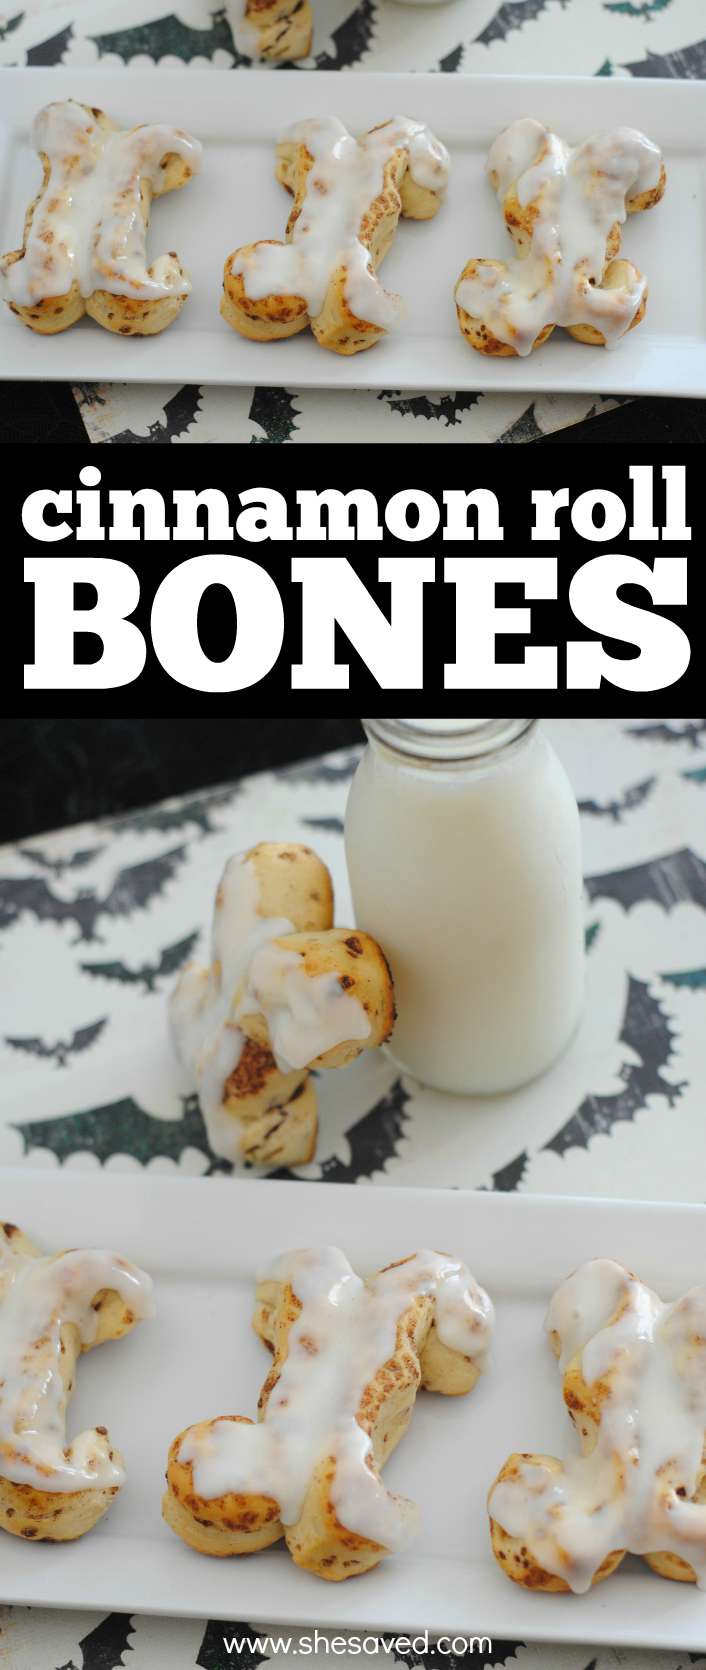 The perfect Halloween breakfast, these spooky cinnamon roll bones are both yummy and a great way to serve up a haunting treat!